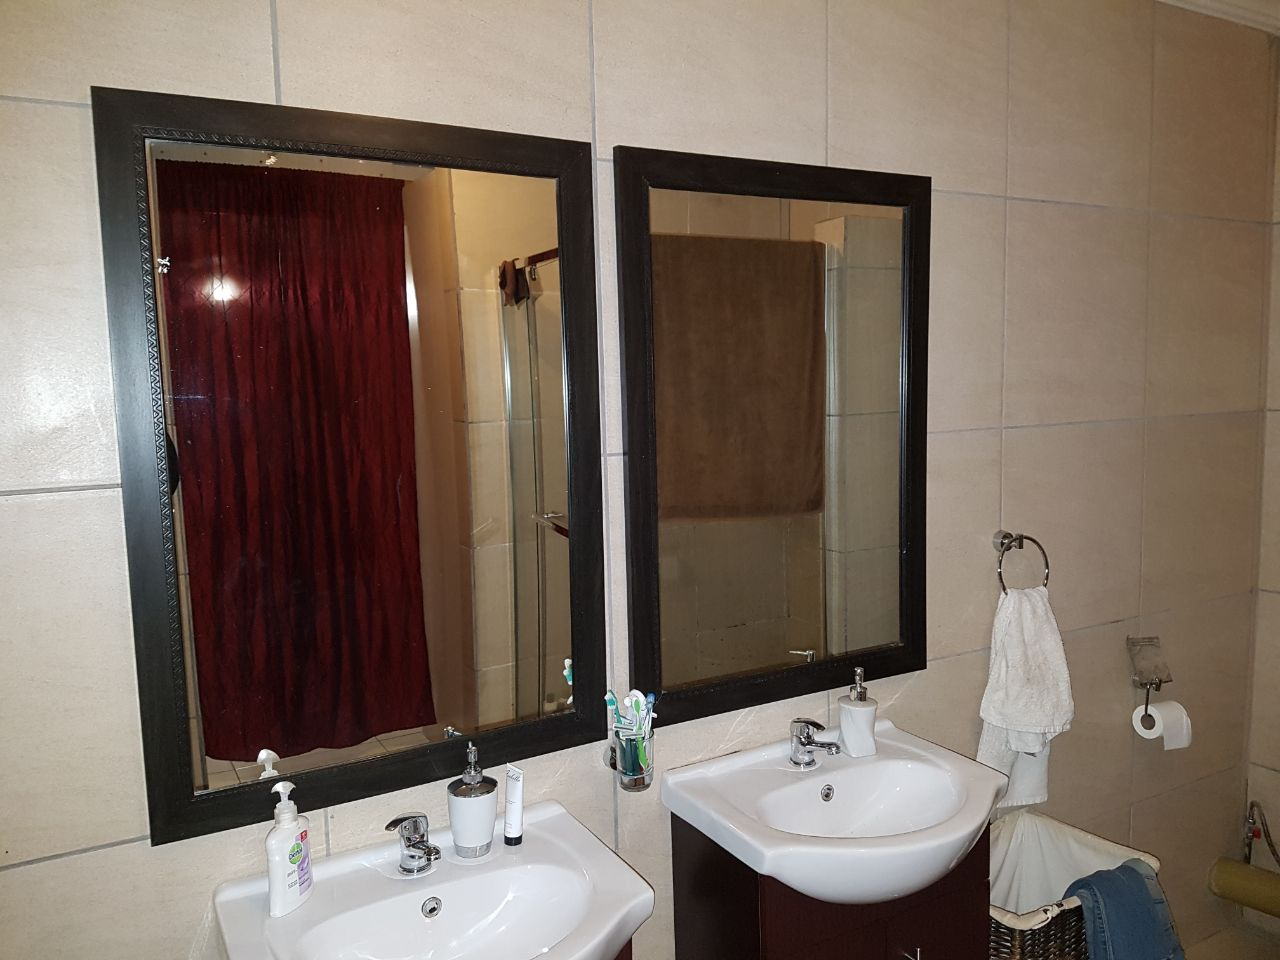 3 Bedroom House for sale in Mountain View ENT0040118 : photo#7